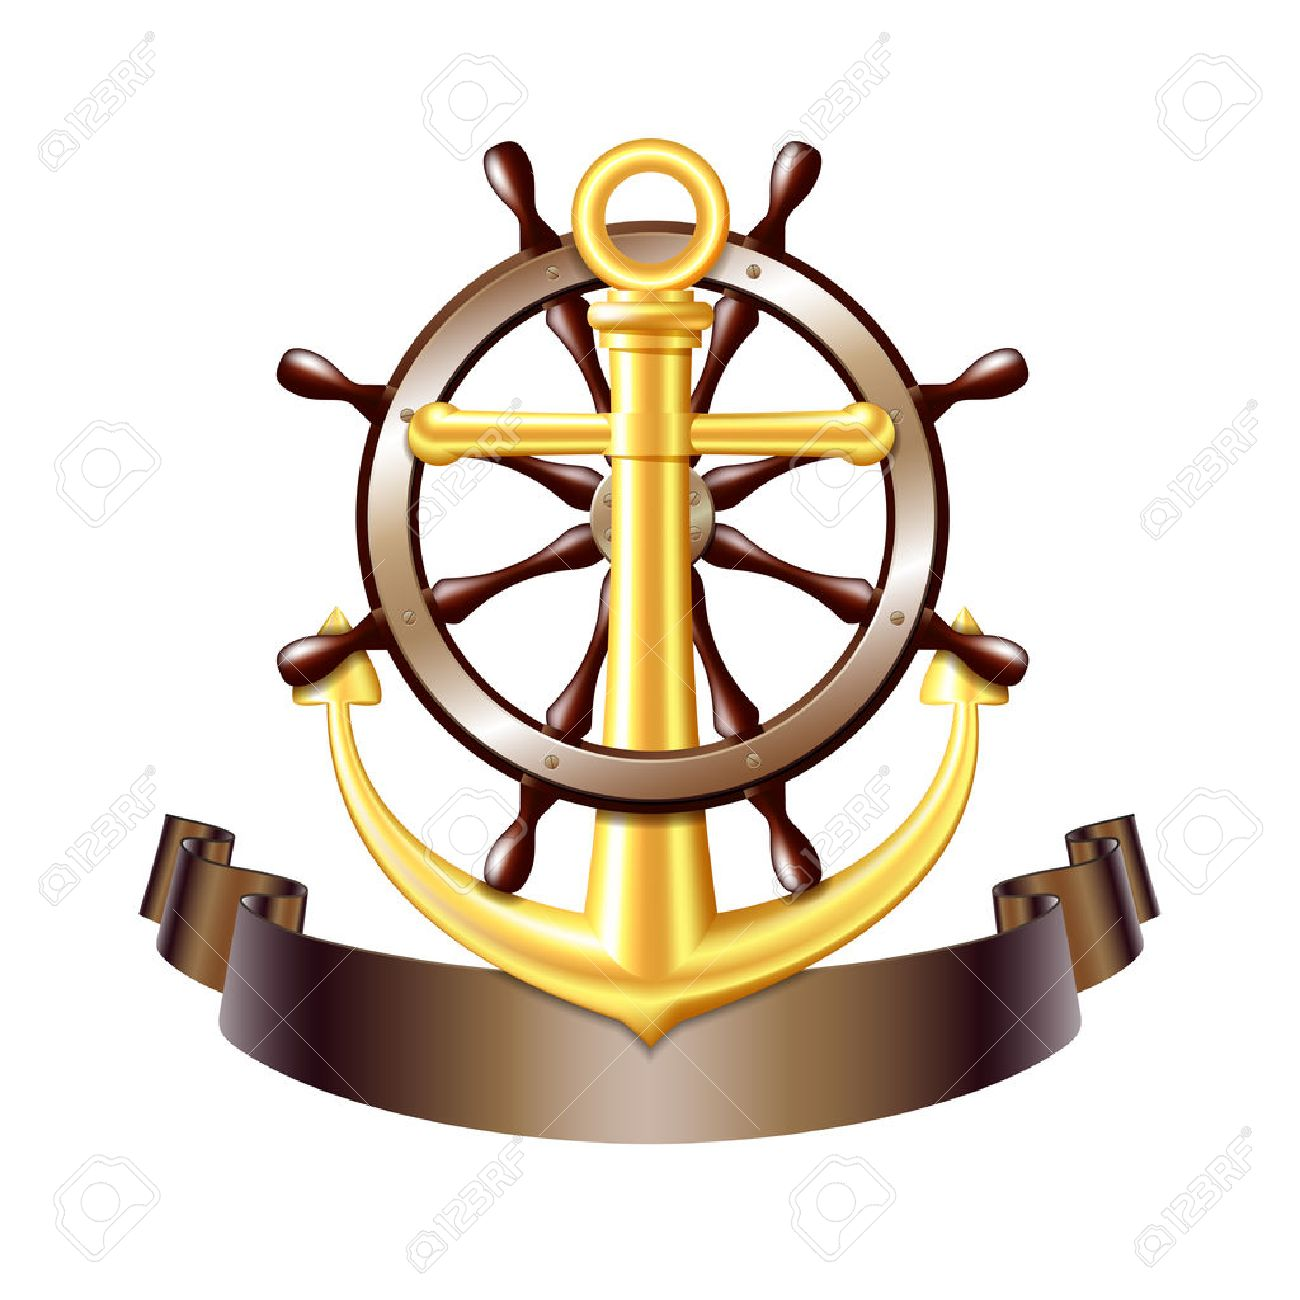 Nautical Emblem With Golden Anchor Steering Wheel For Ship And Royalty Free Cliparts Vectors And Stock Illustration Image 61860803